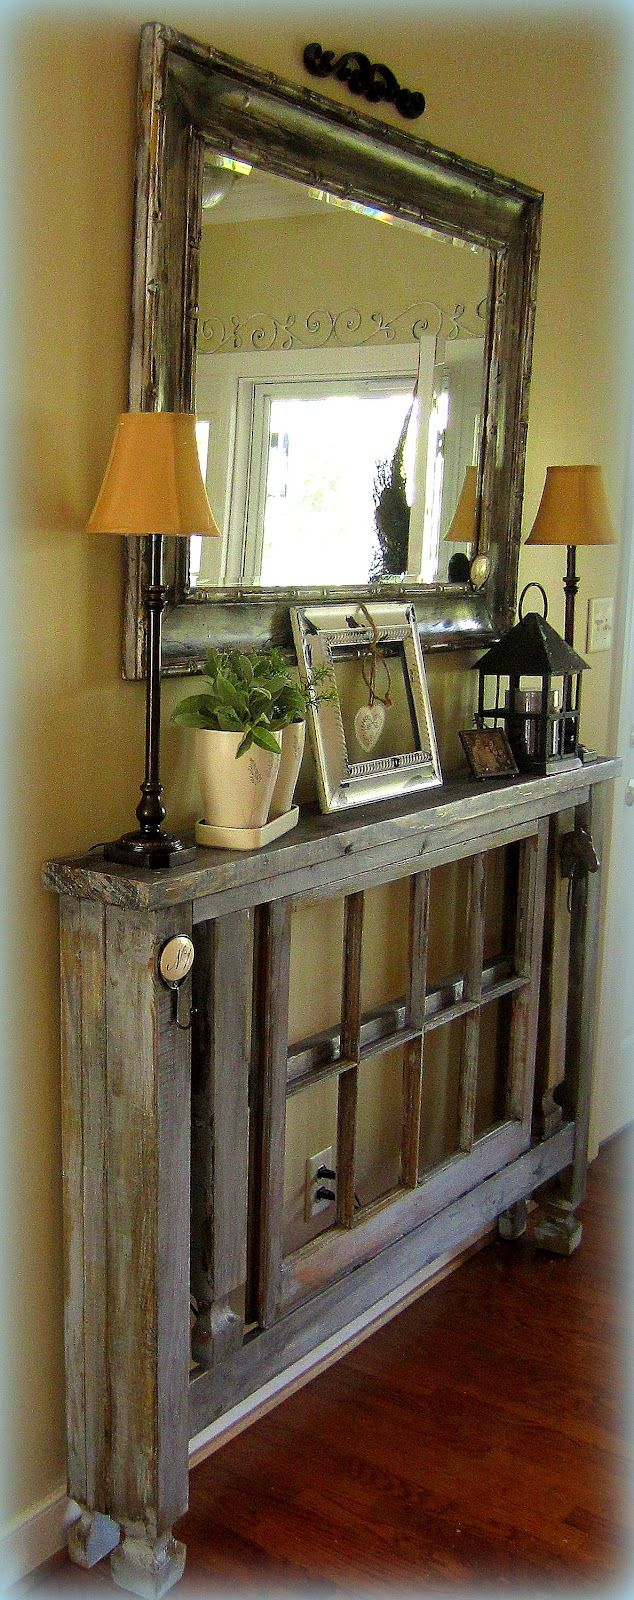 Narrow Foyer Near Me : Best images about crafts on pinterest shutter shelf